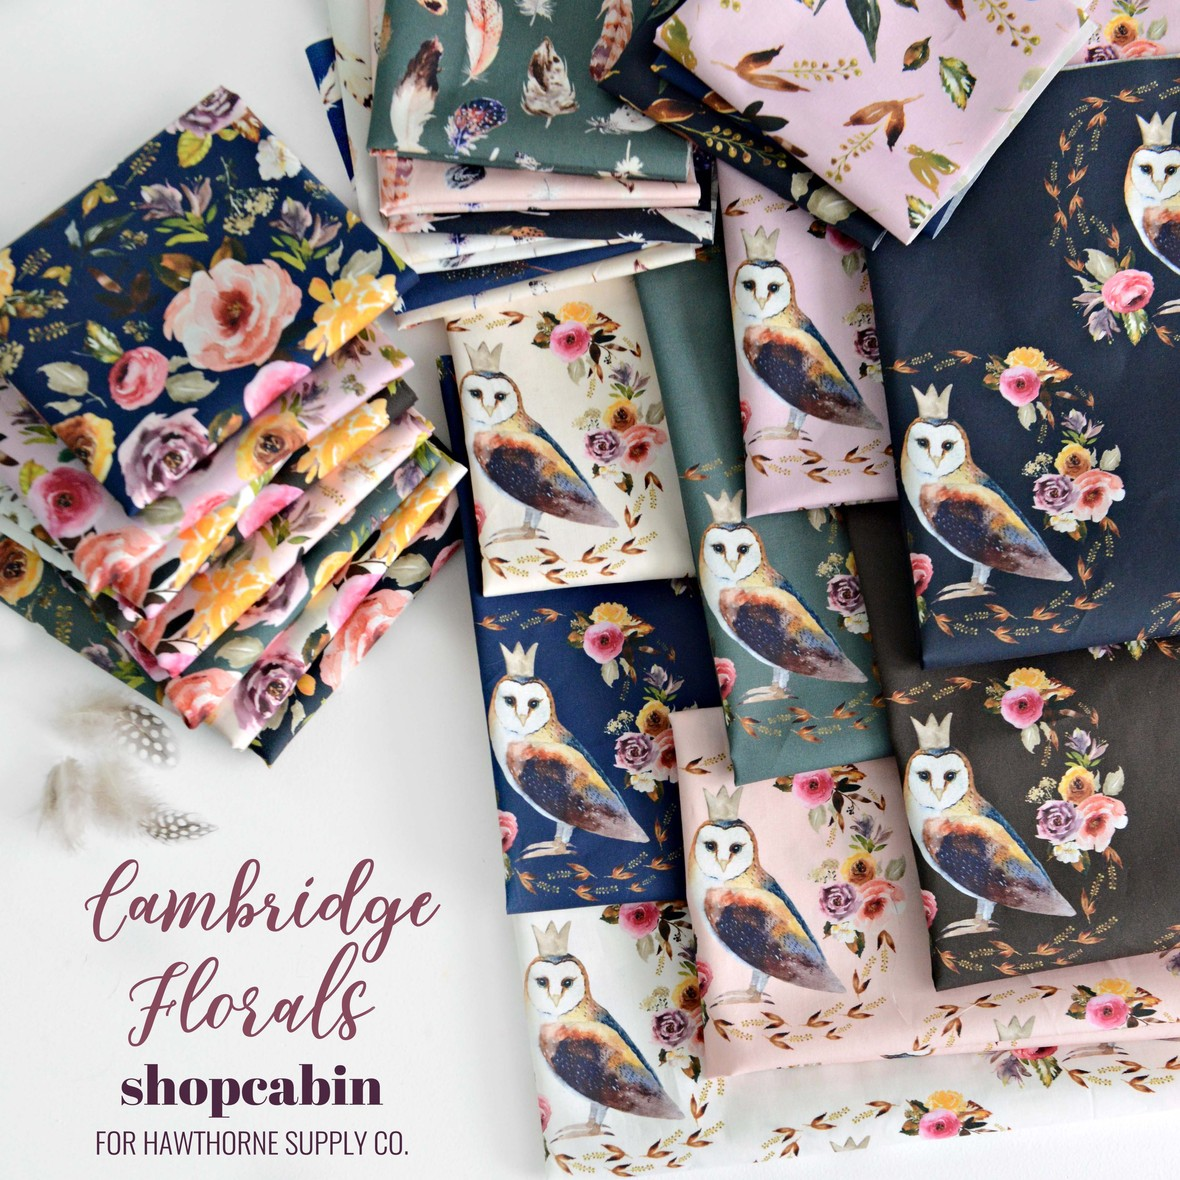 Cambridge Florals Fabric Poster Shopcabin for Hawthorne Supply Co